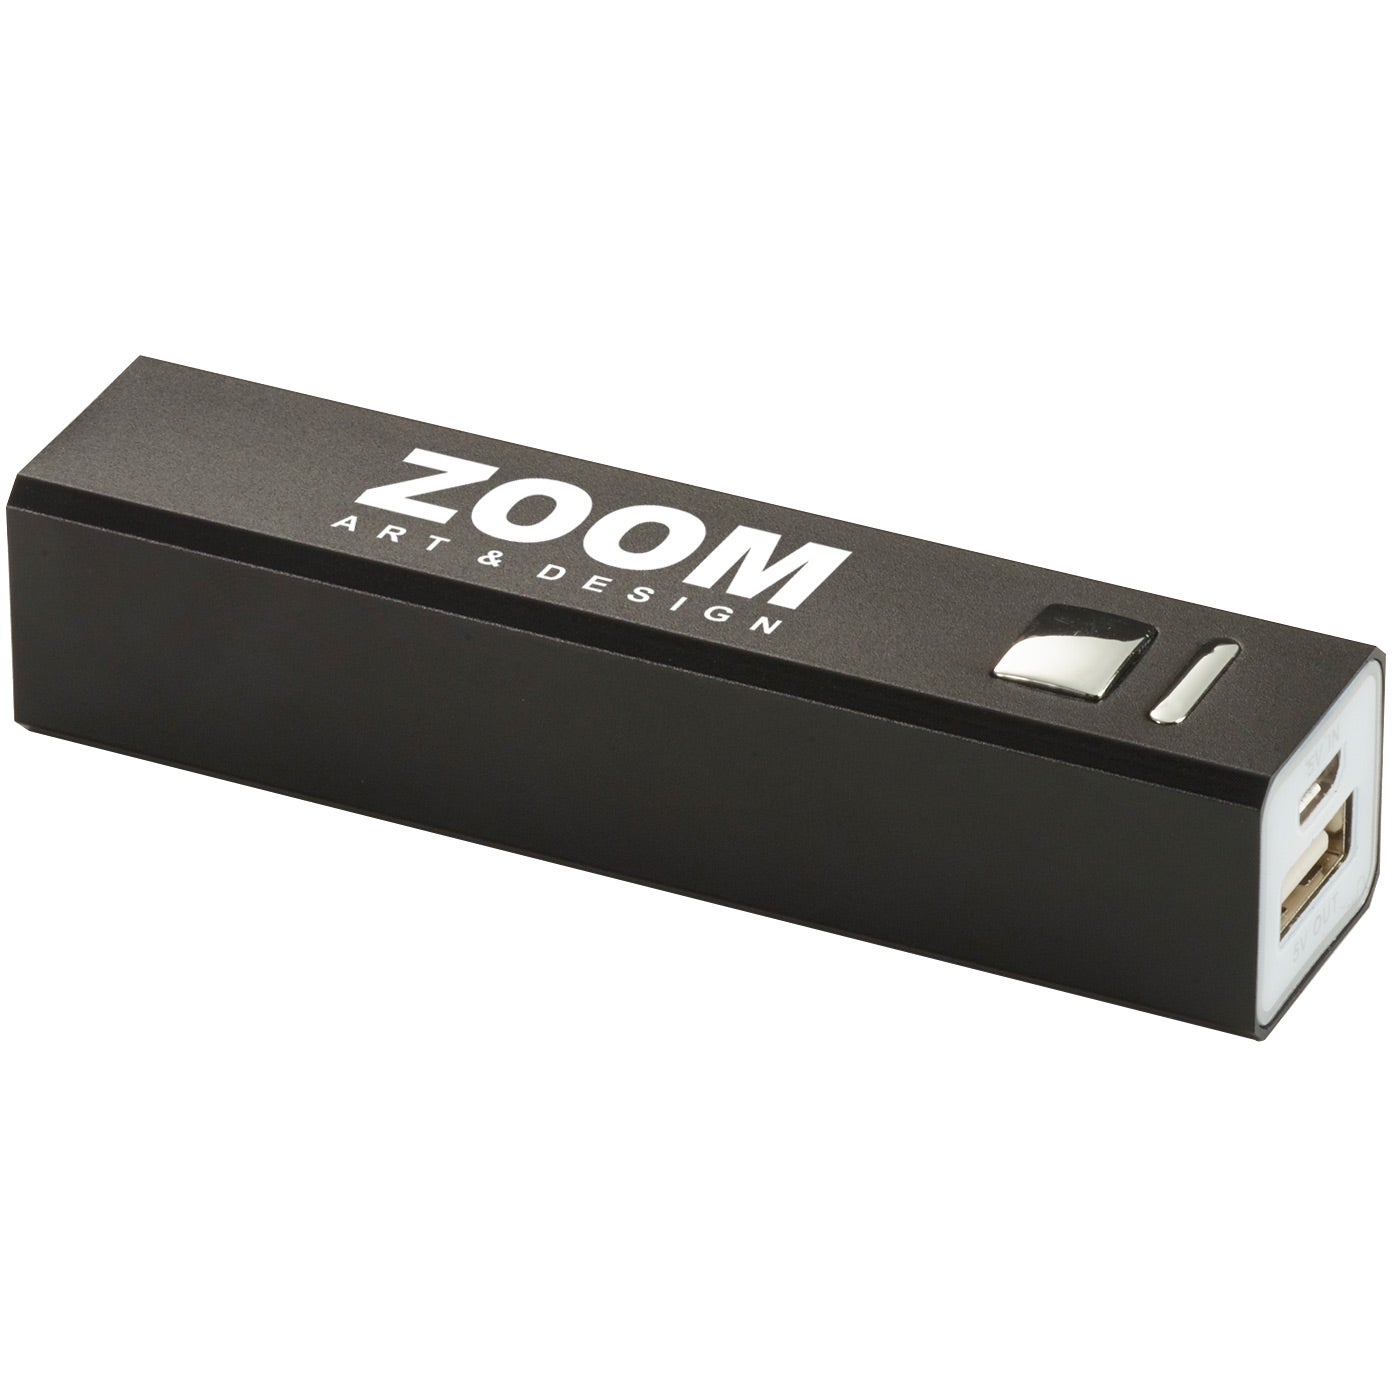 Charge-On UL Listed Power Bank